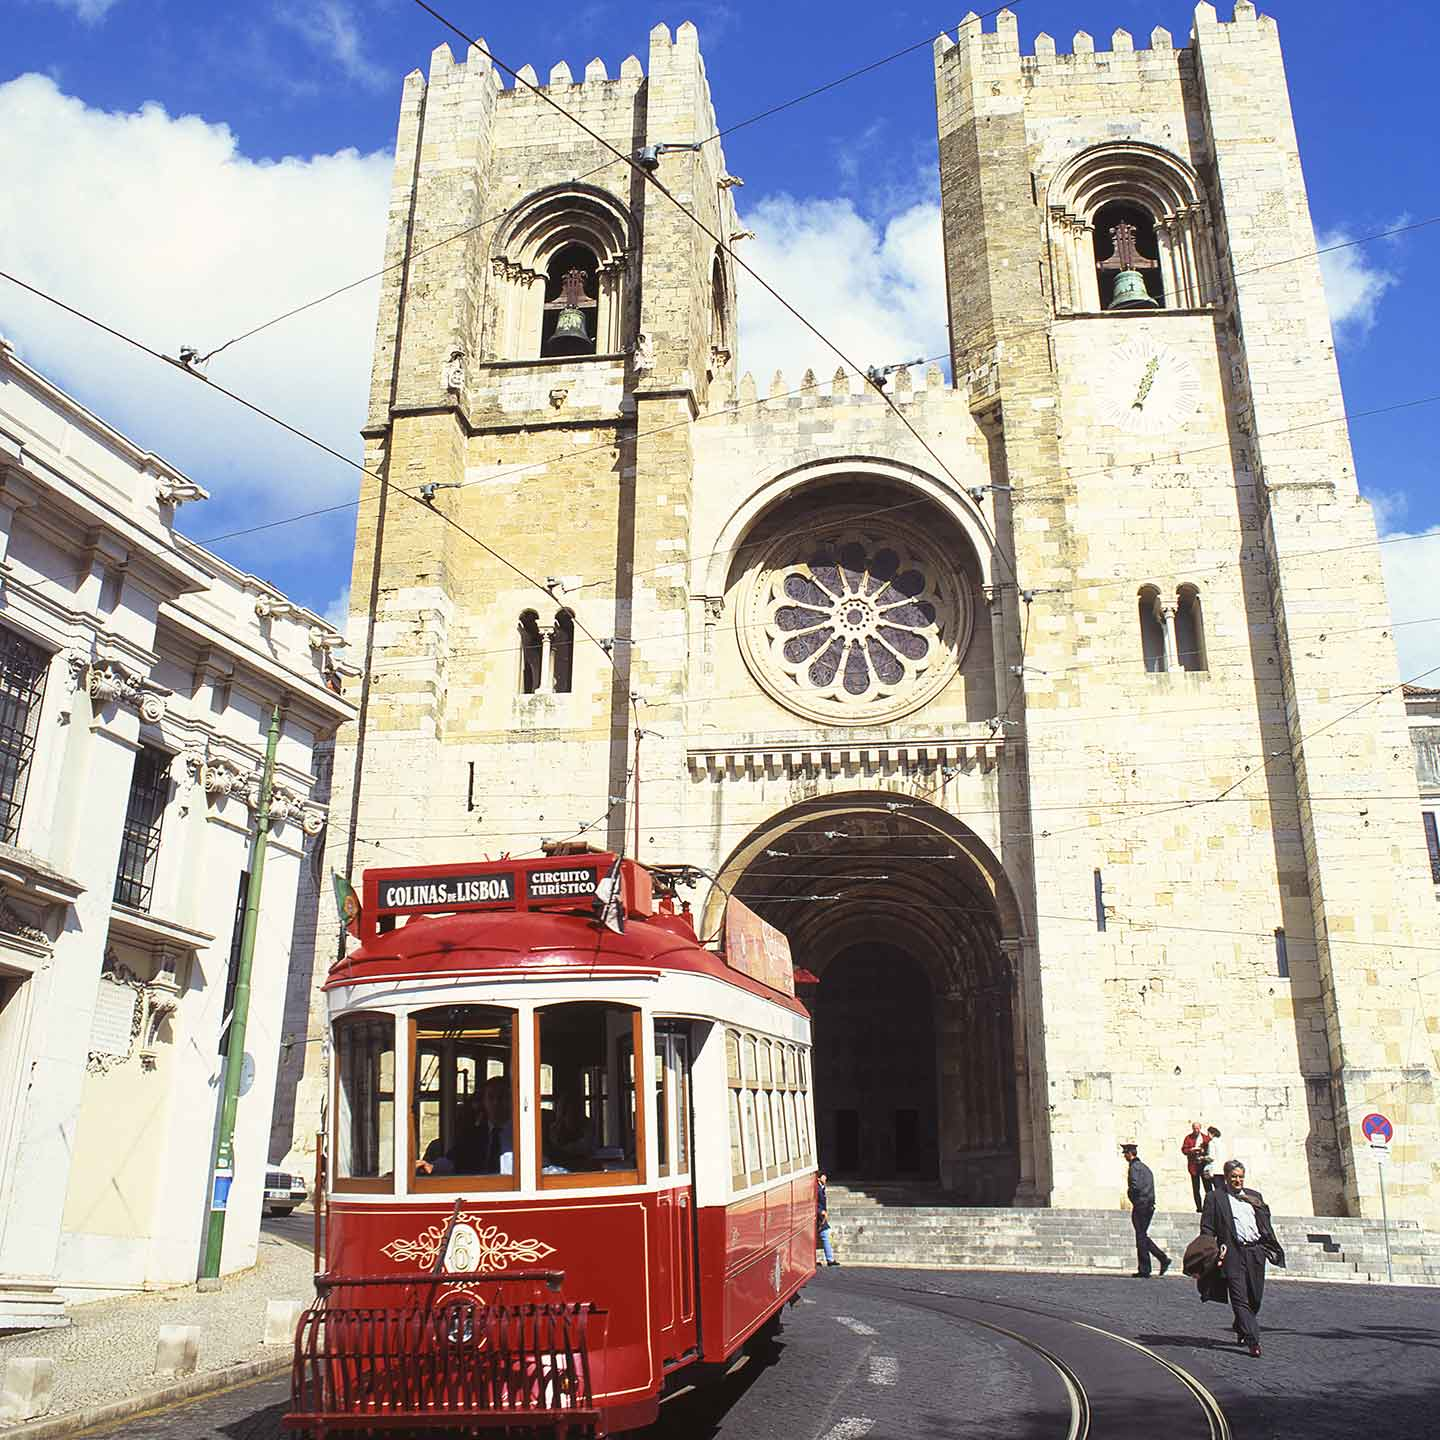 3 days in LIsbon Image of tram passing the Cathedral in LIsbon